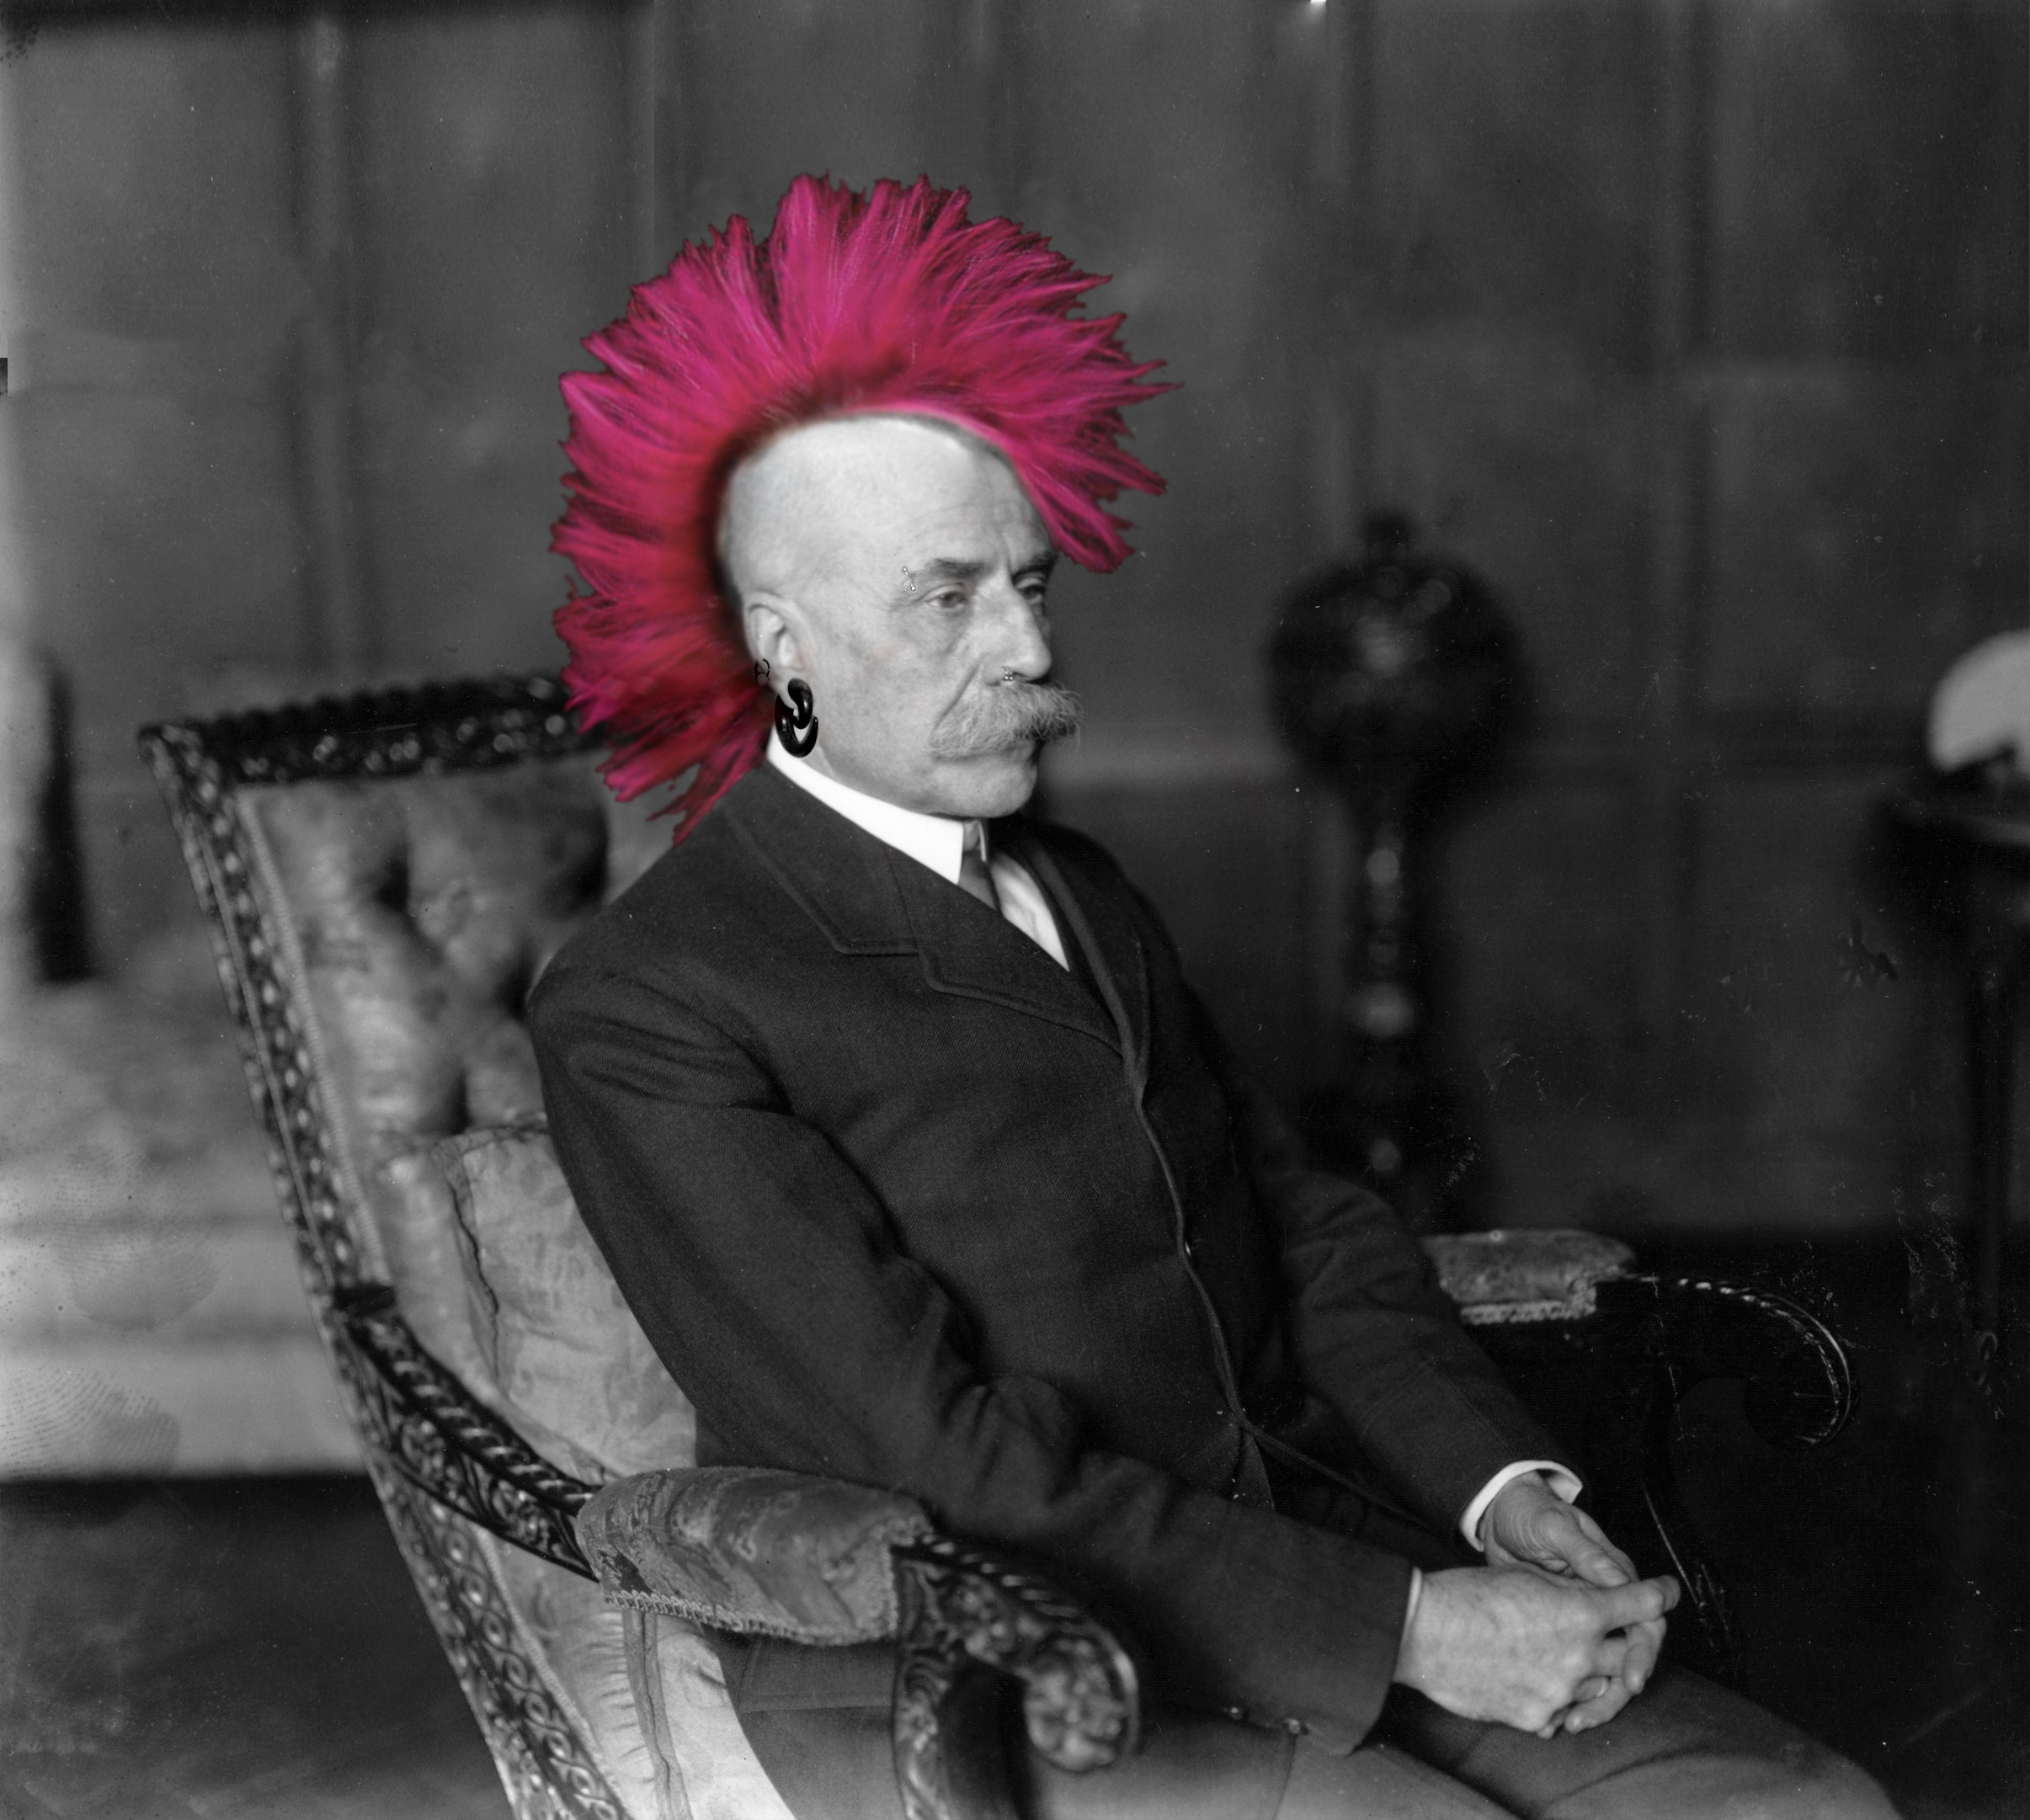 Elgar with a mohawk